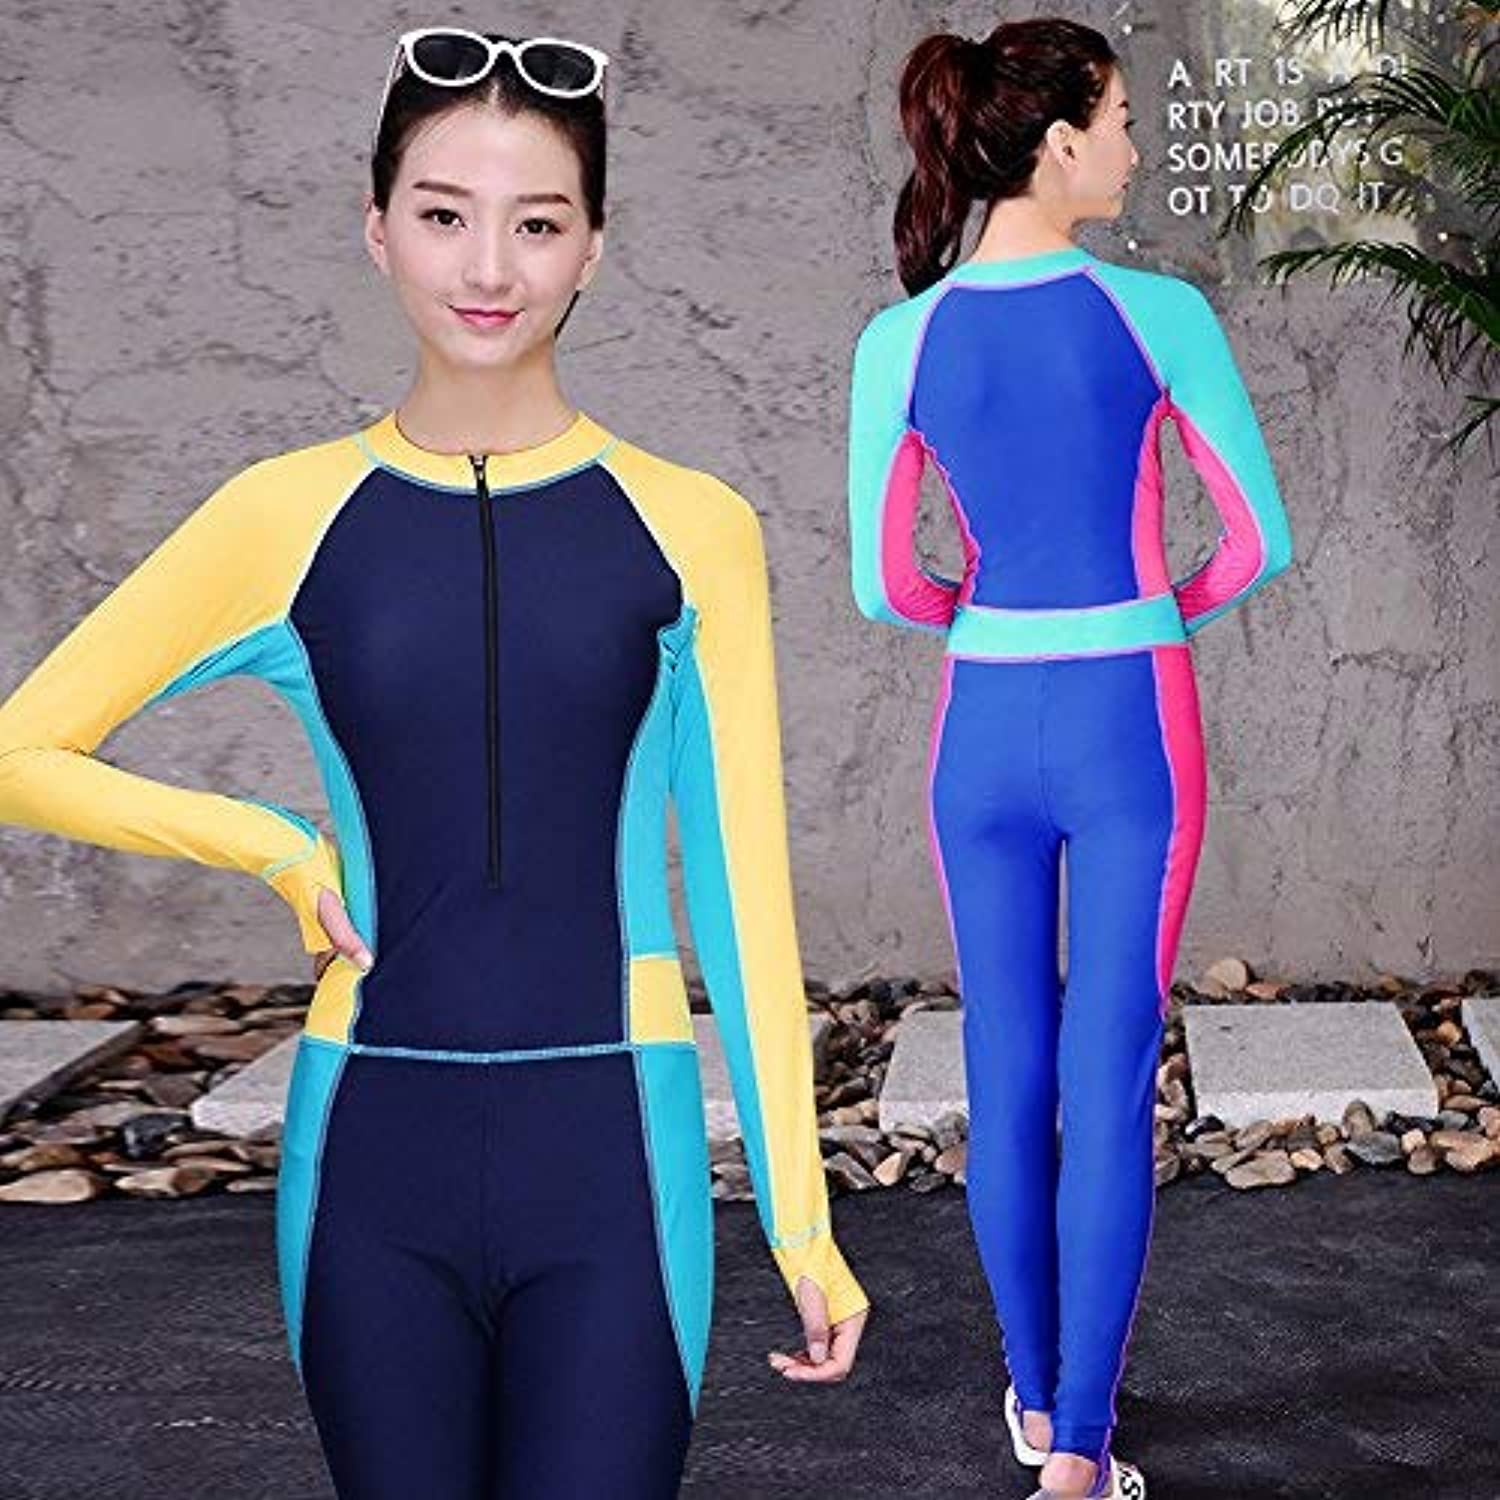 Women Siamese Swimwear Swim Wear LongSleeved Body Warm Jellyfish Surfing, Sapphire bluee,XL (color   As Shown, Size   One Size)